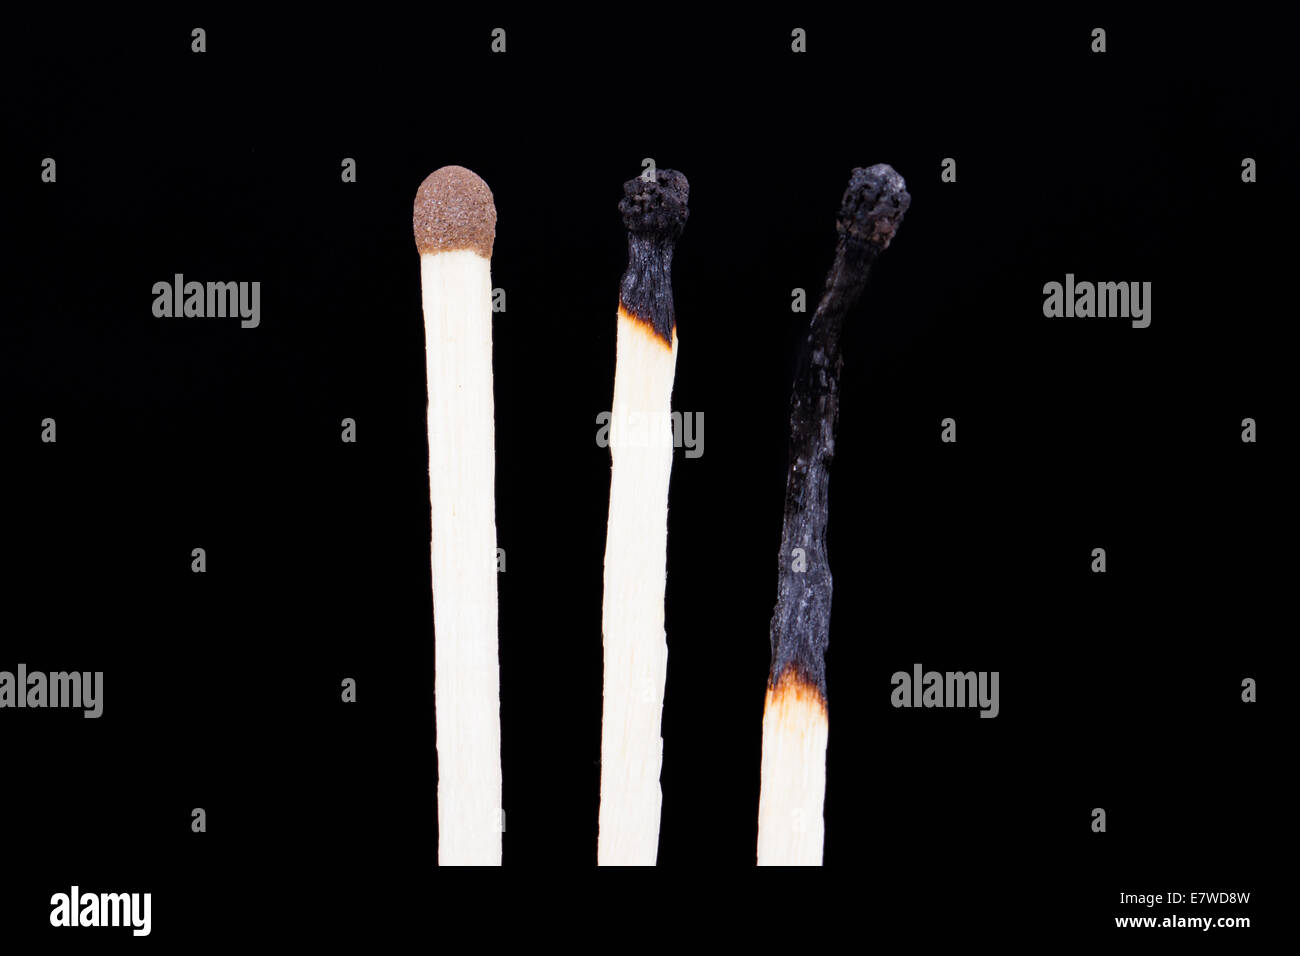 One healthy and two burnt matches in row, isolated on dark background. - Stock Image